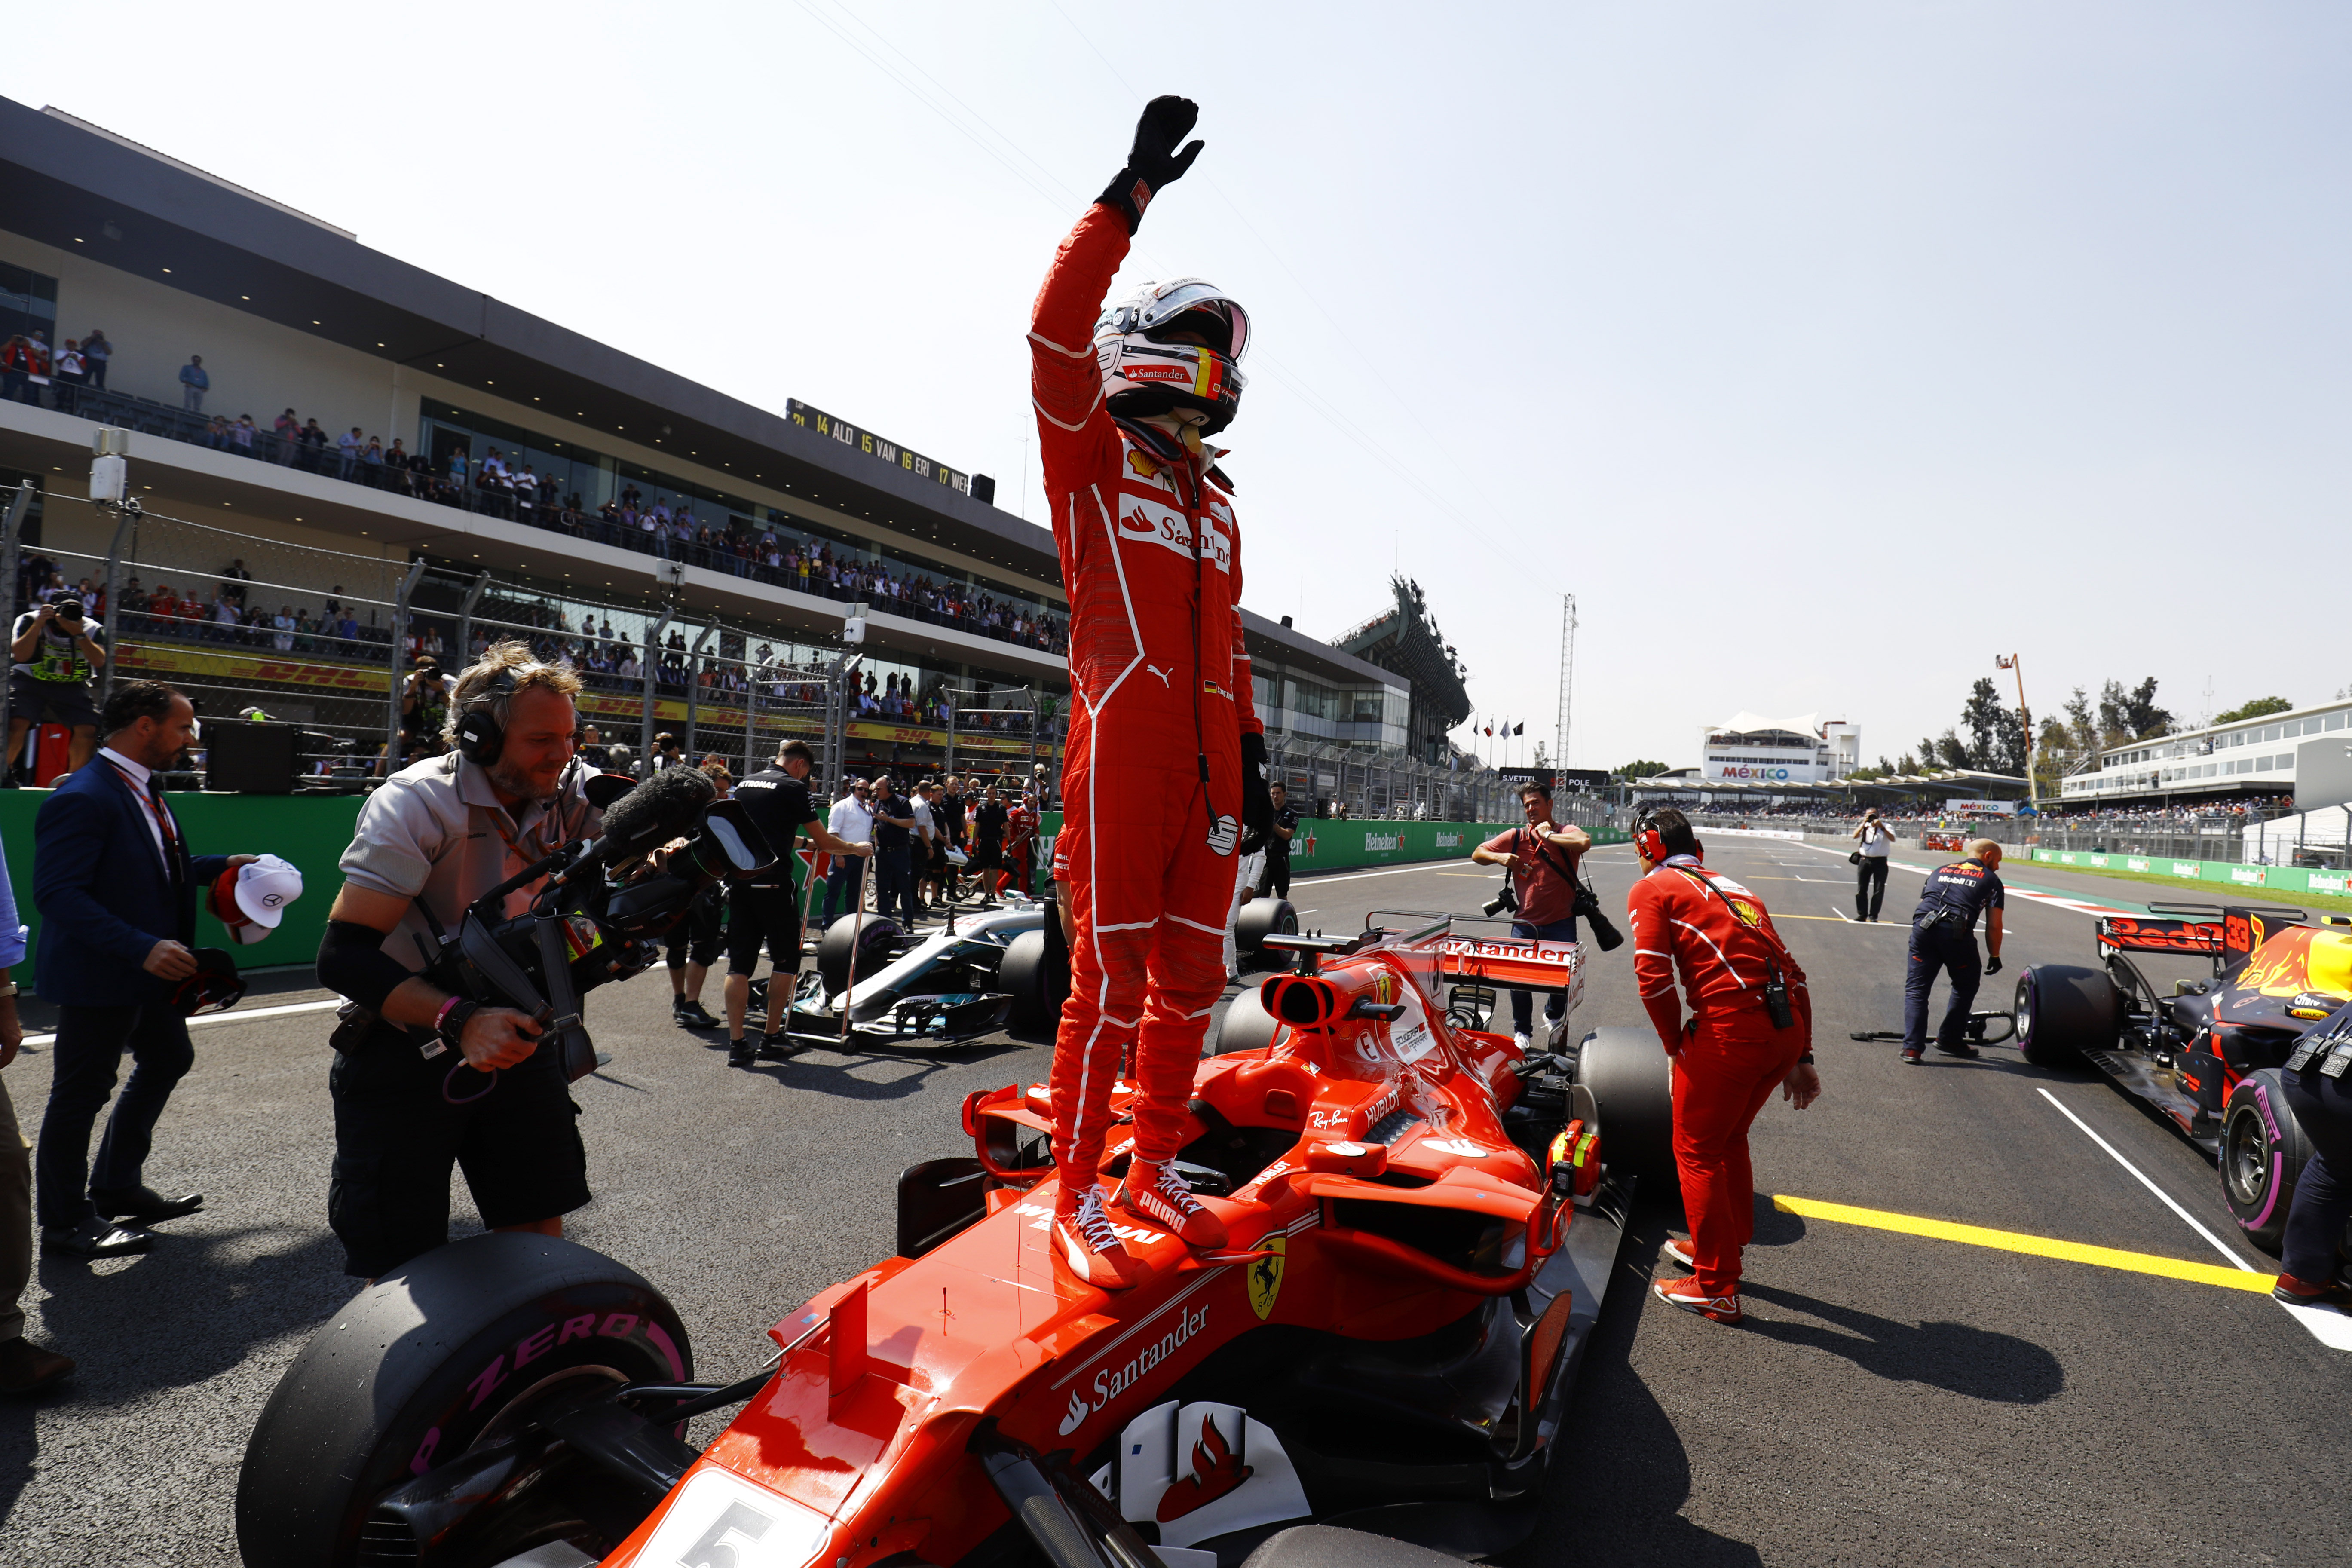 f1 vettel takes crucial pole in mexico ahead of verstappen and hamilton federation. Black Bedroom Furniture Sets. Home Design Ideas